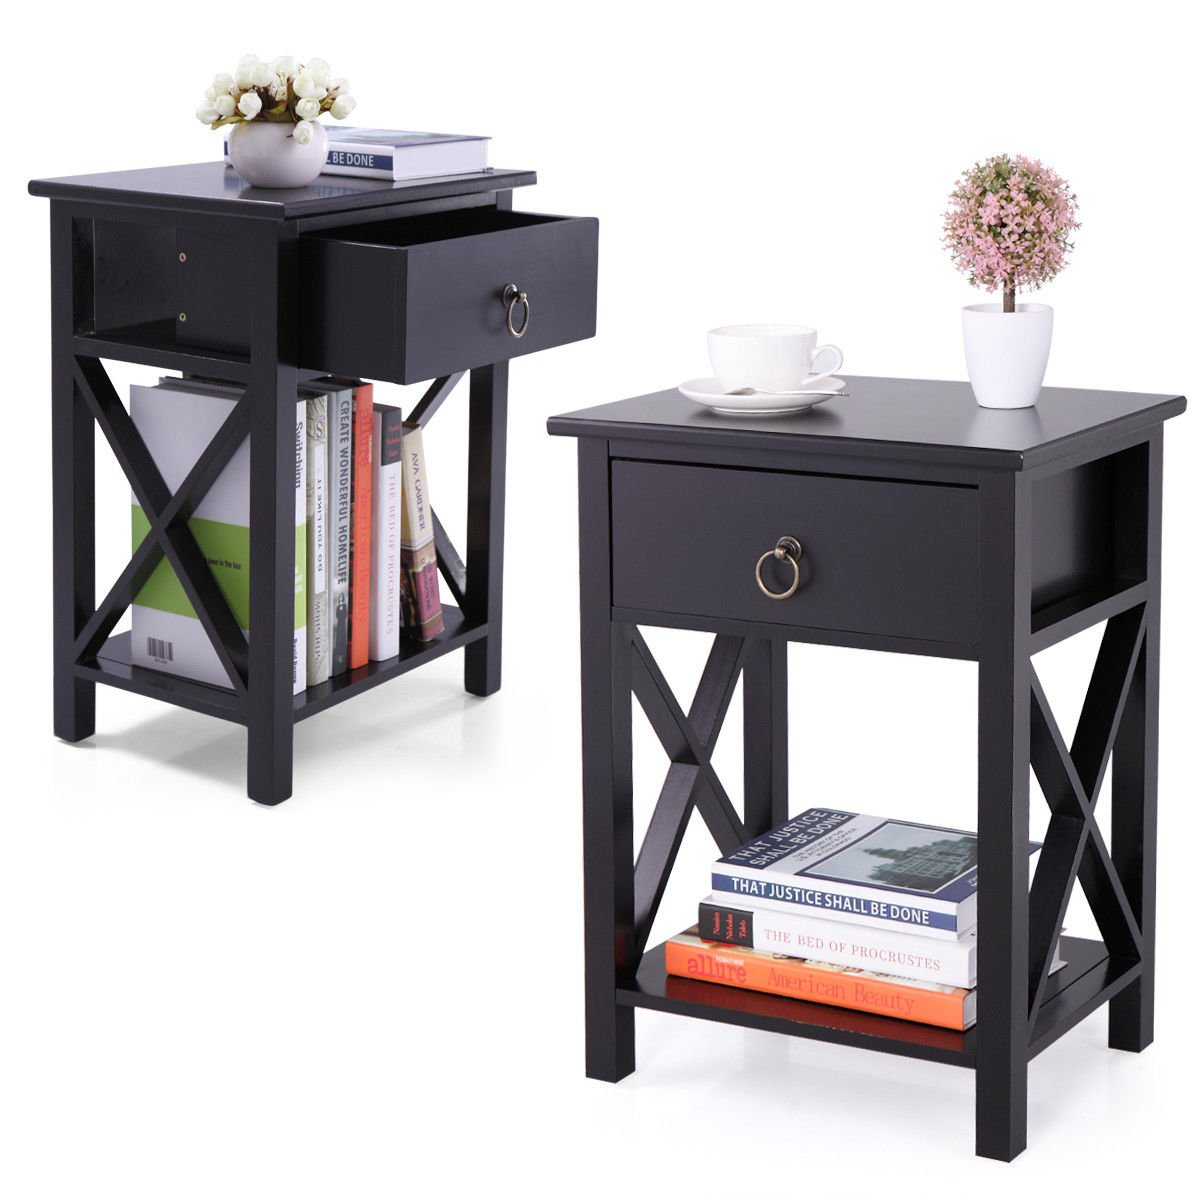 tobbi nightstand mdf end side table drawer storage winsome ava accent with black finish bedroom furniture set kitchen dining sofa small asian lamps tiffany style hanging lamp